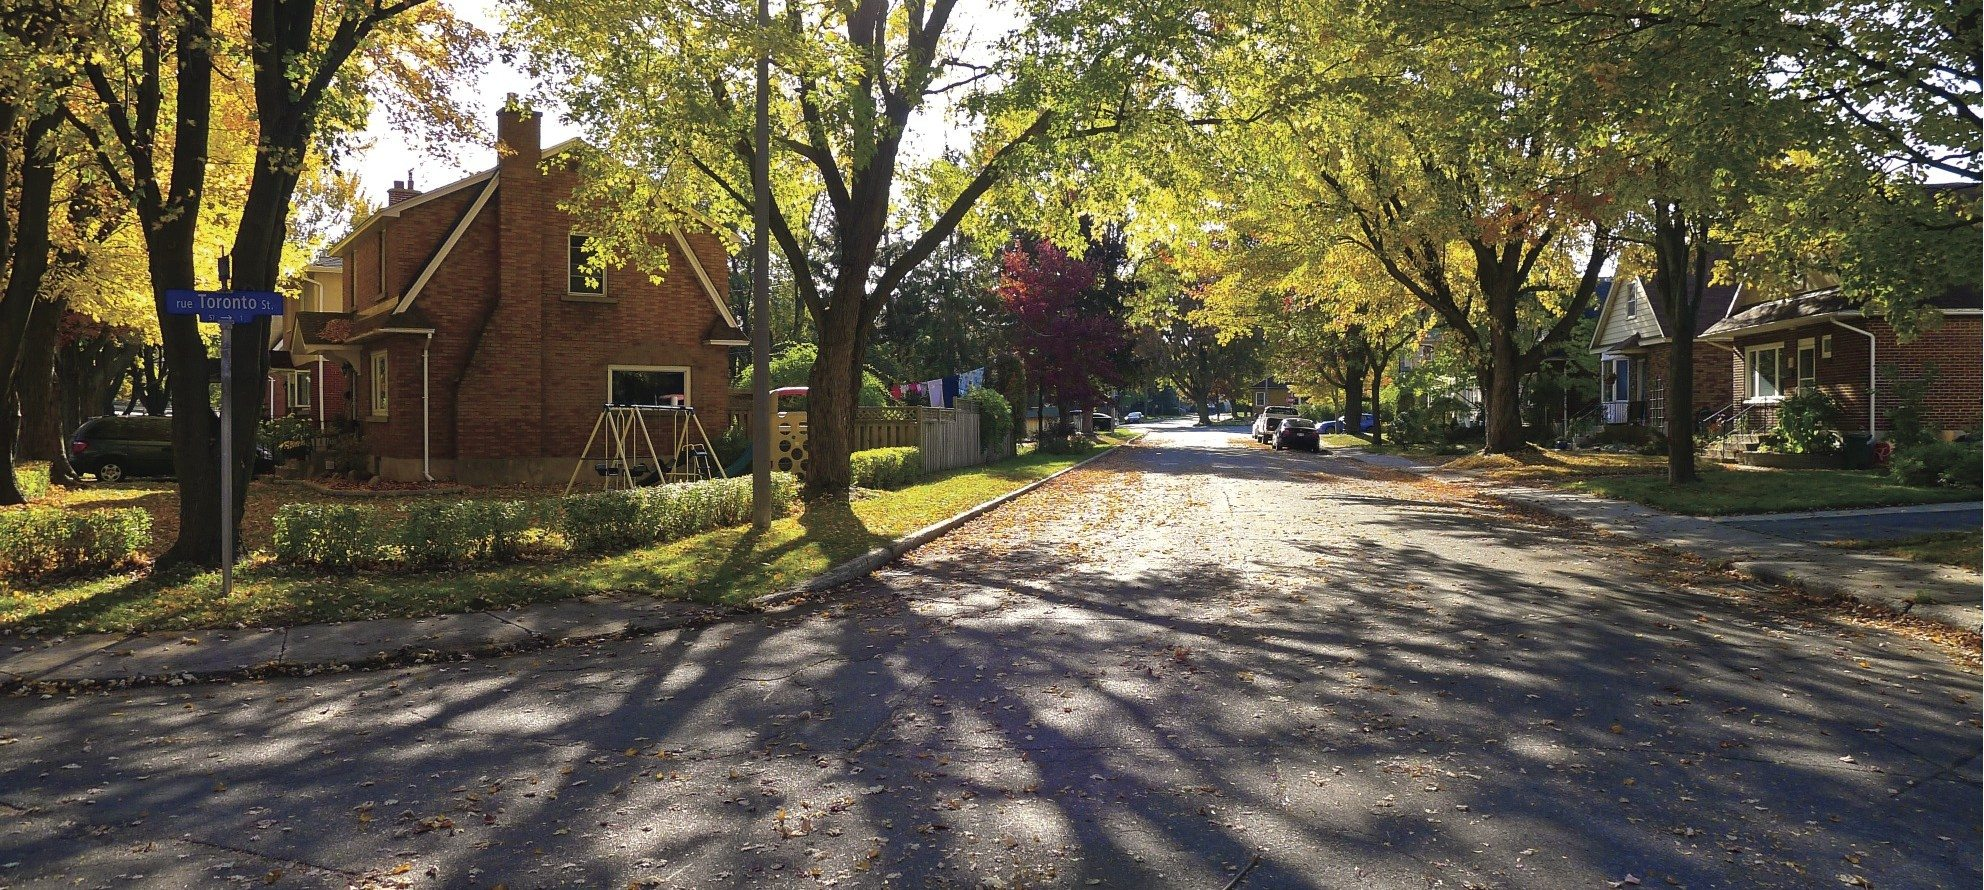 Where To Buy Now: OLD OTTAWA SOUTH